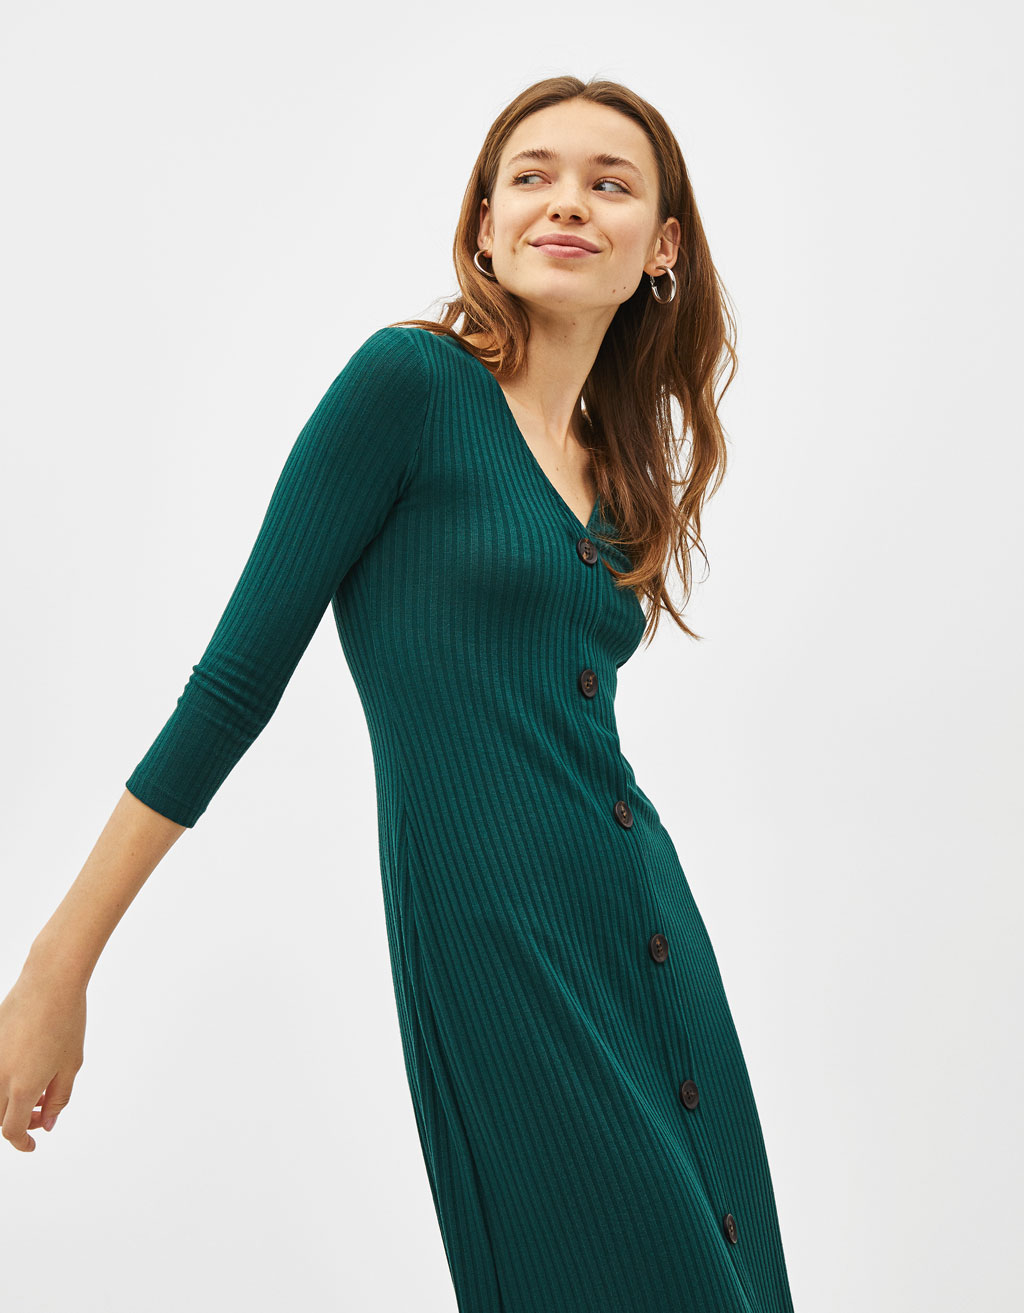 5939272fbb1e Button-up midi dress - Sale Favourites - Bershka Hong Kong SAR ...